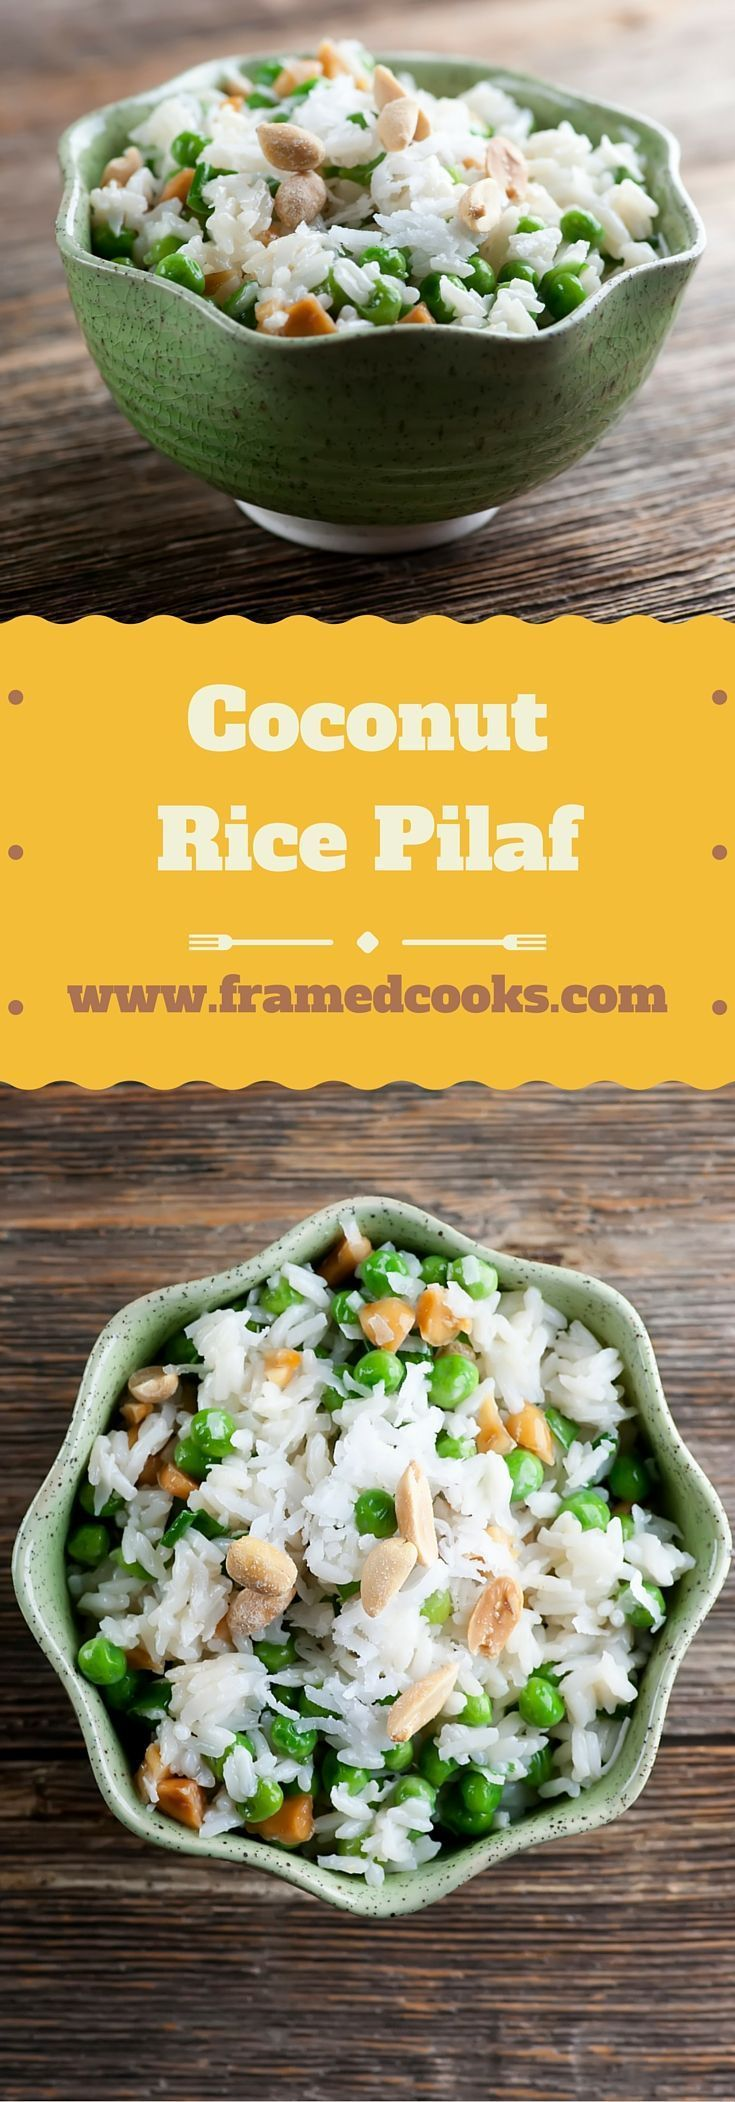 Coconut Rice Pilaf -  #coconut #pilaf #rice #easyricepilaf Coconut Rice Pilaf #easyricepilaf